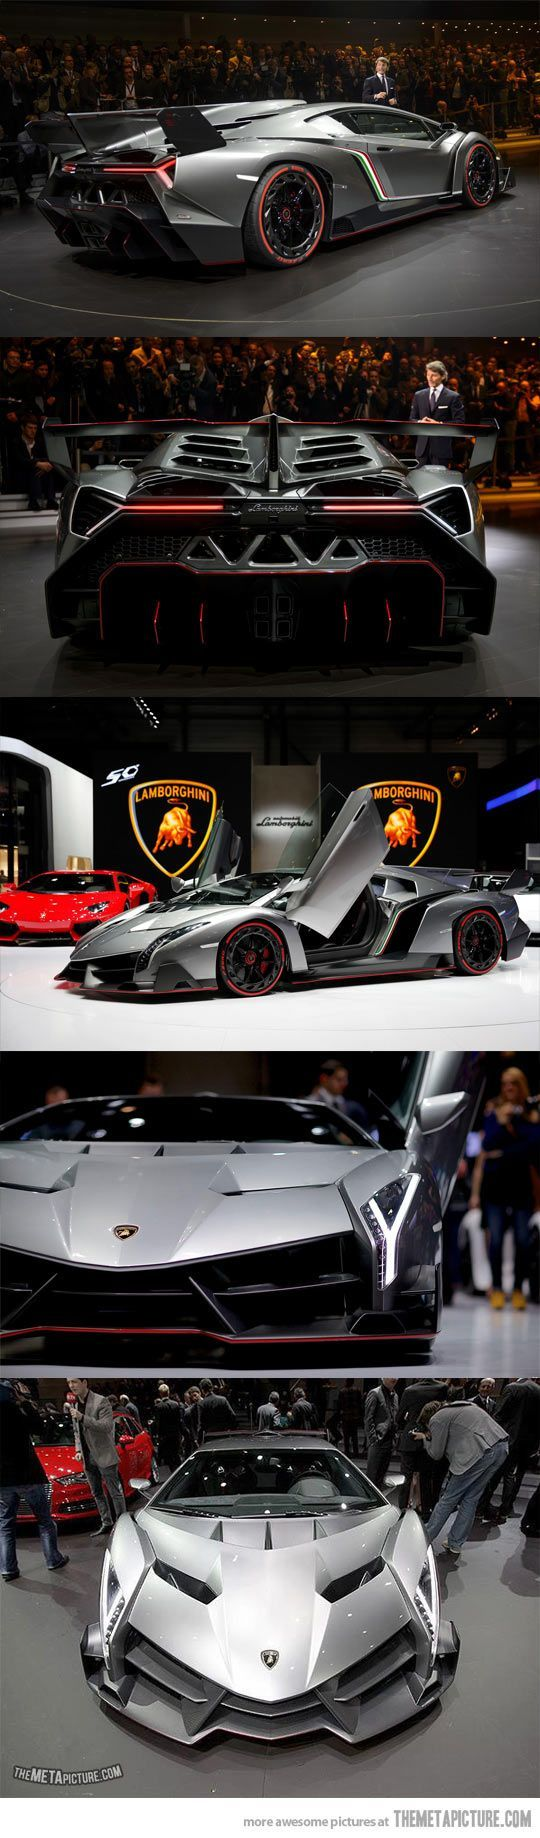 Cool Stuff We Like Here @ Cool Pile, The Home of Coolest Gadgets => CoolPile.com ------- << Original Comment >> ------- Lamborghini Veneno, they're only building 9 of these babies in 2014